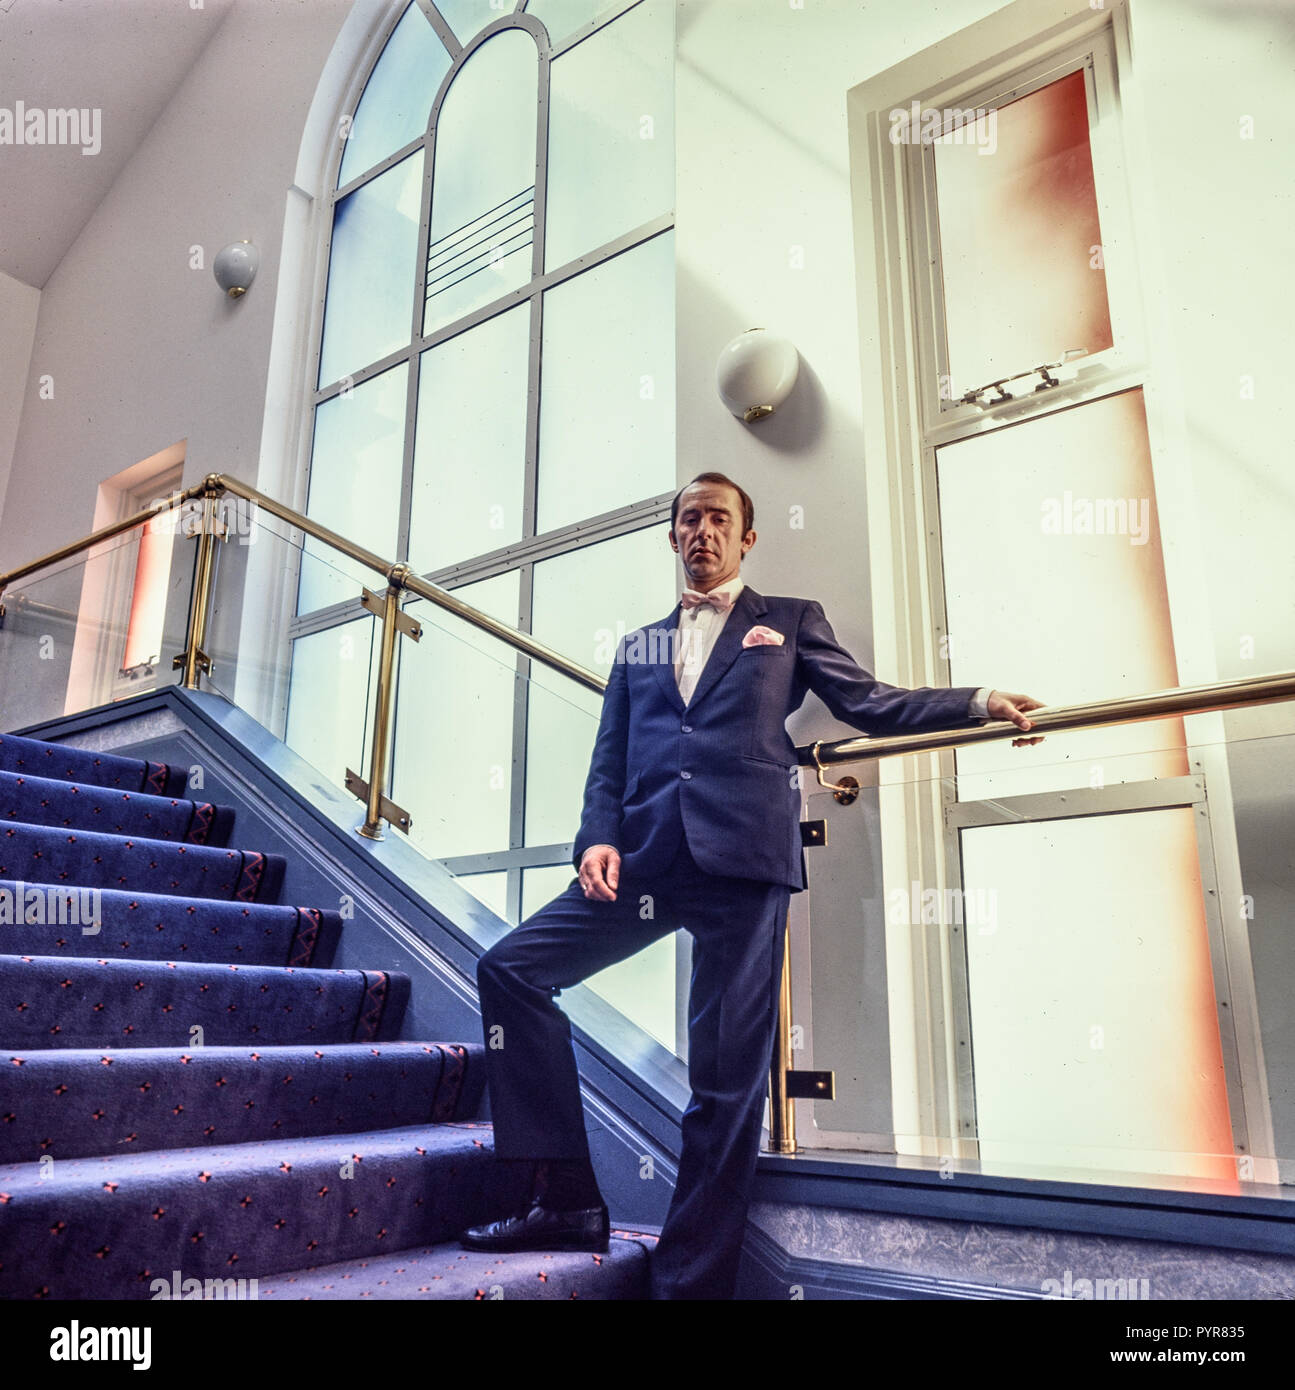 Swansea, Wales, Uk, May 1988: Manager of the Swansea Grand Theatre poses on the stairs of the foyer. Shot on medium format film. Stock Photo